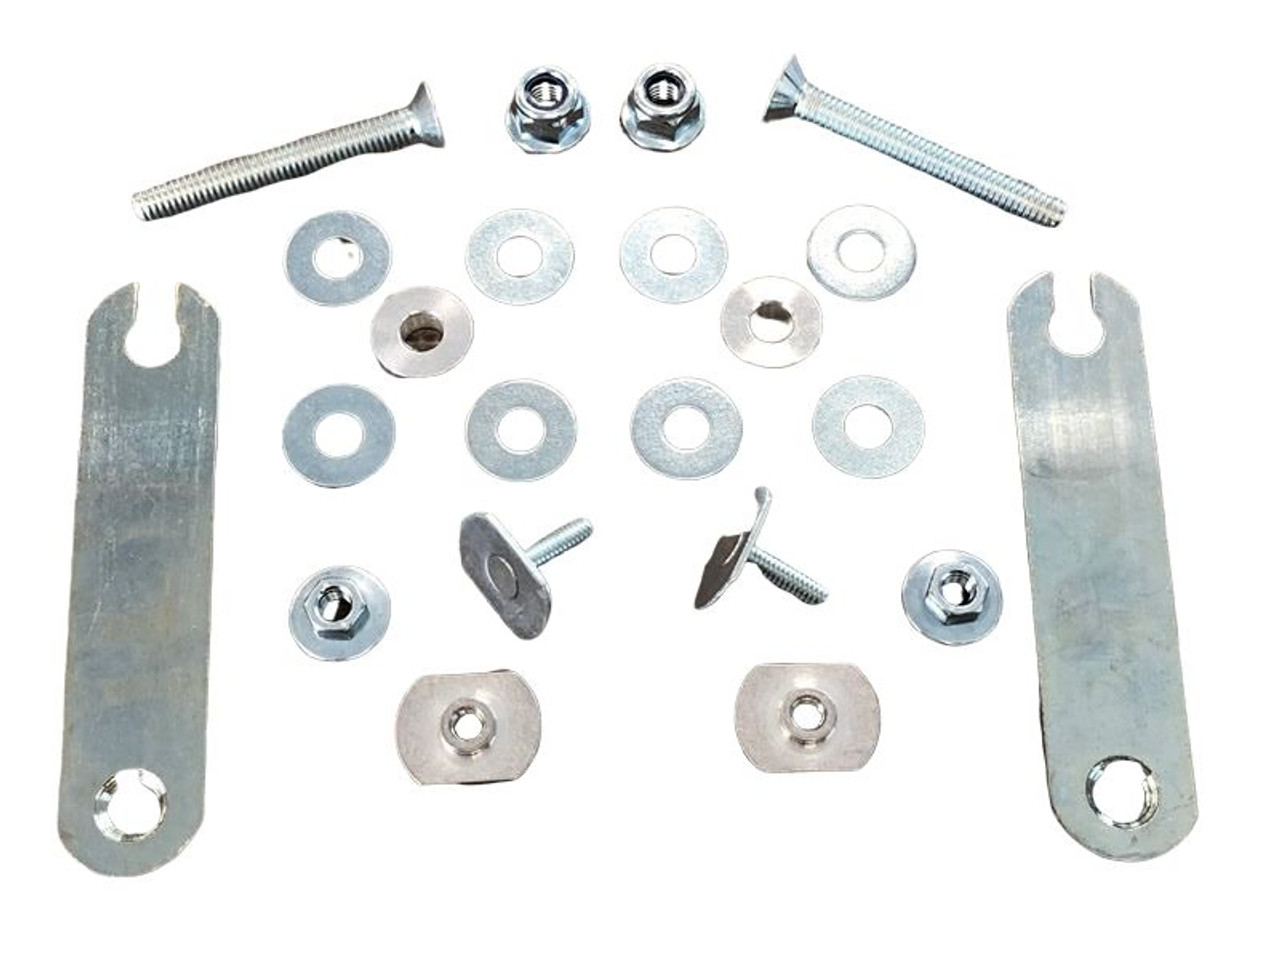 Tillett Chainguard Long Bracket Kit